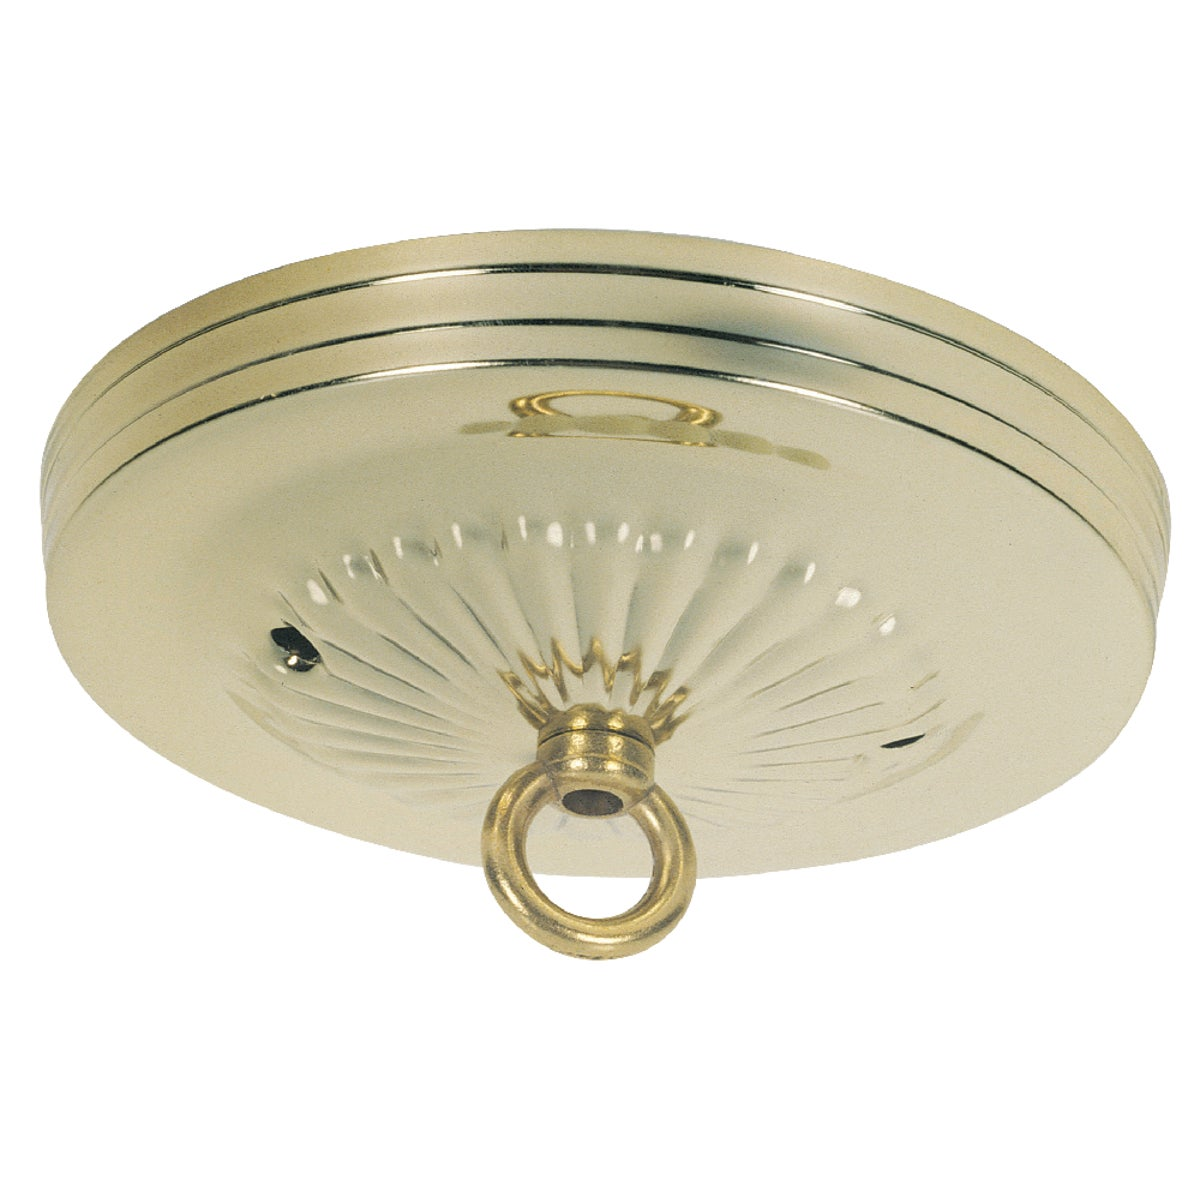 BRASS CANOPY KIT - 70052 by Westinghouse Lightng